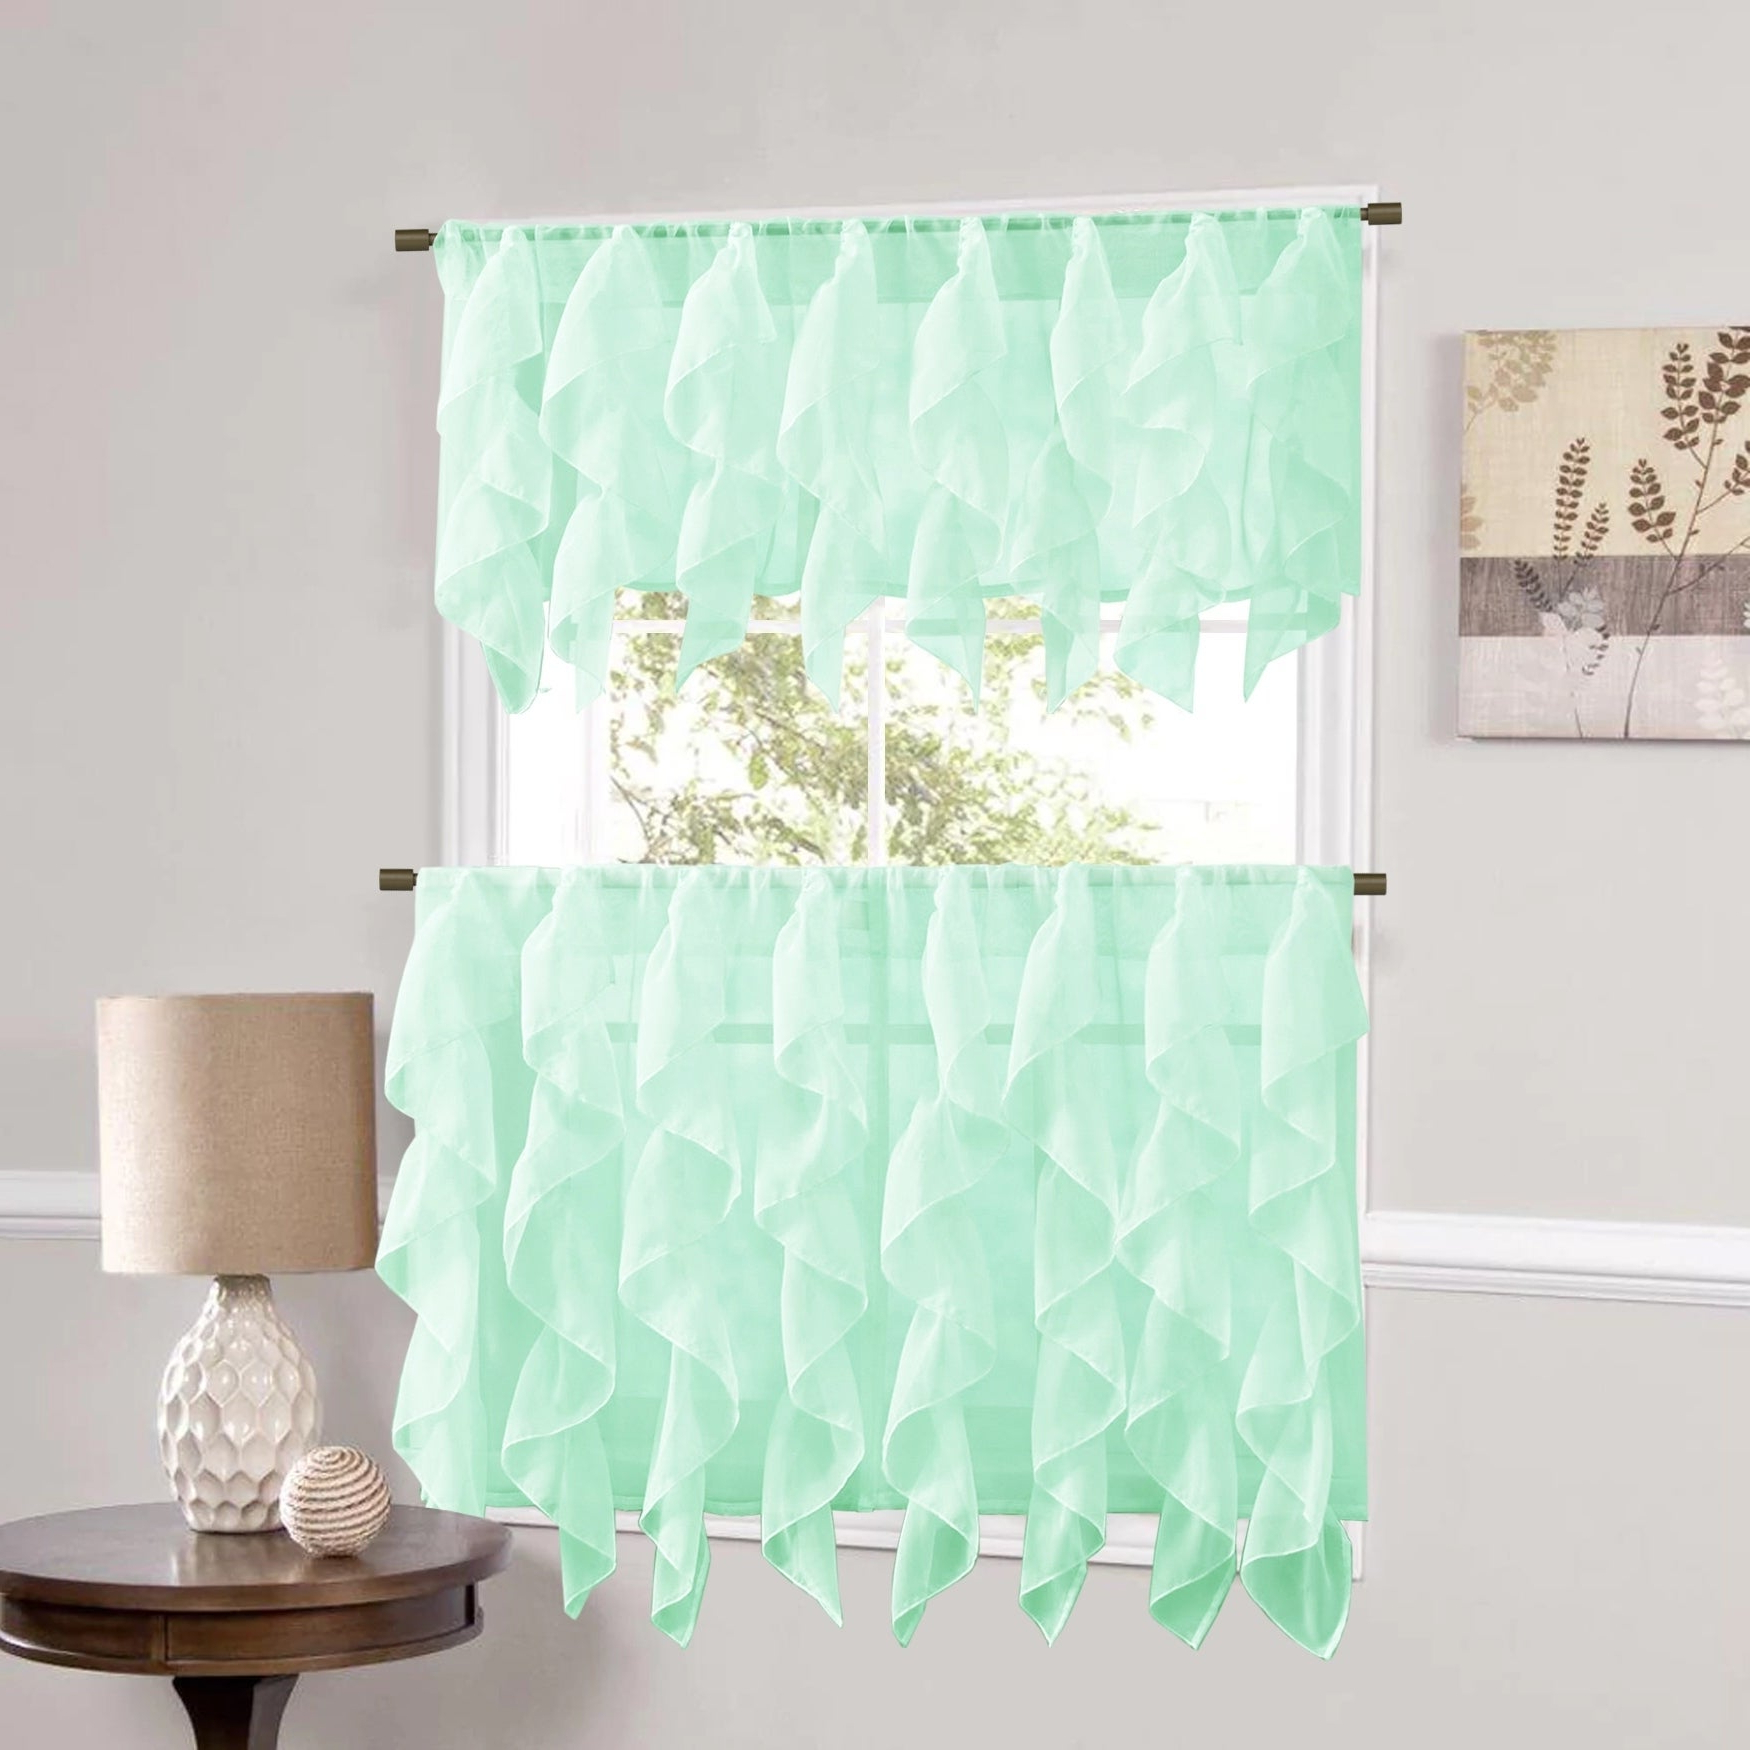 Vertical Ruffled Waterfall Valances And Curtain Tiers Regarding Best And Newest Sweet Home Collection Mint Vertical Ruffled Waterfall Valance And Curtain Tiers (View 2 of 20)